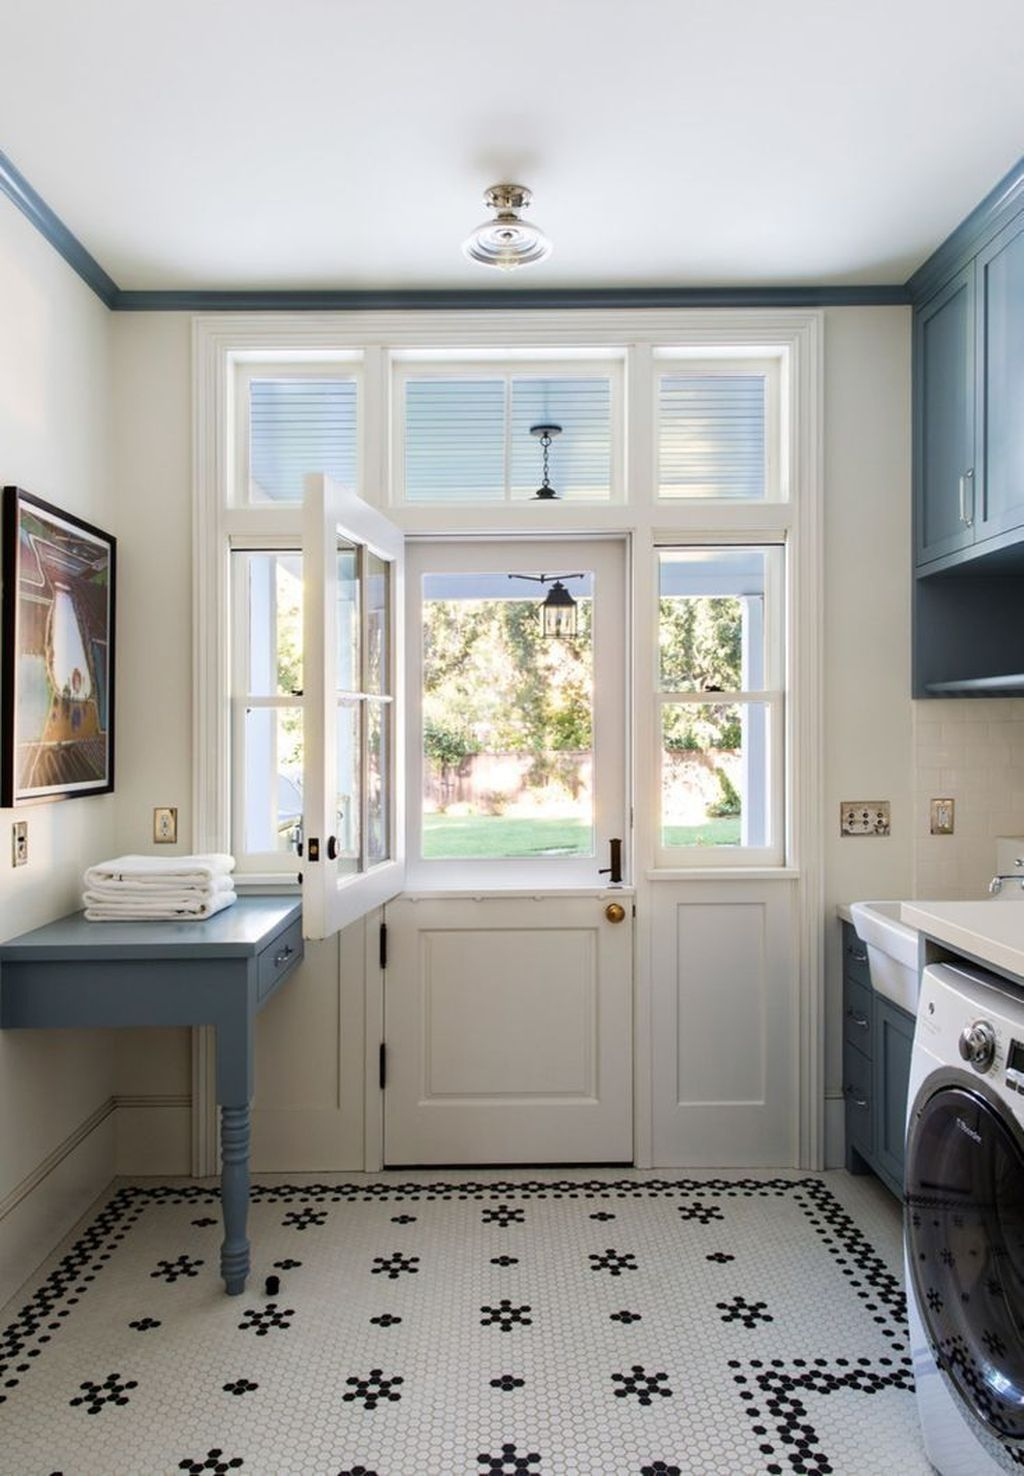 42 Catchy Transitional Laundry Room Ideas To Rock This Year images